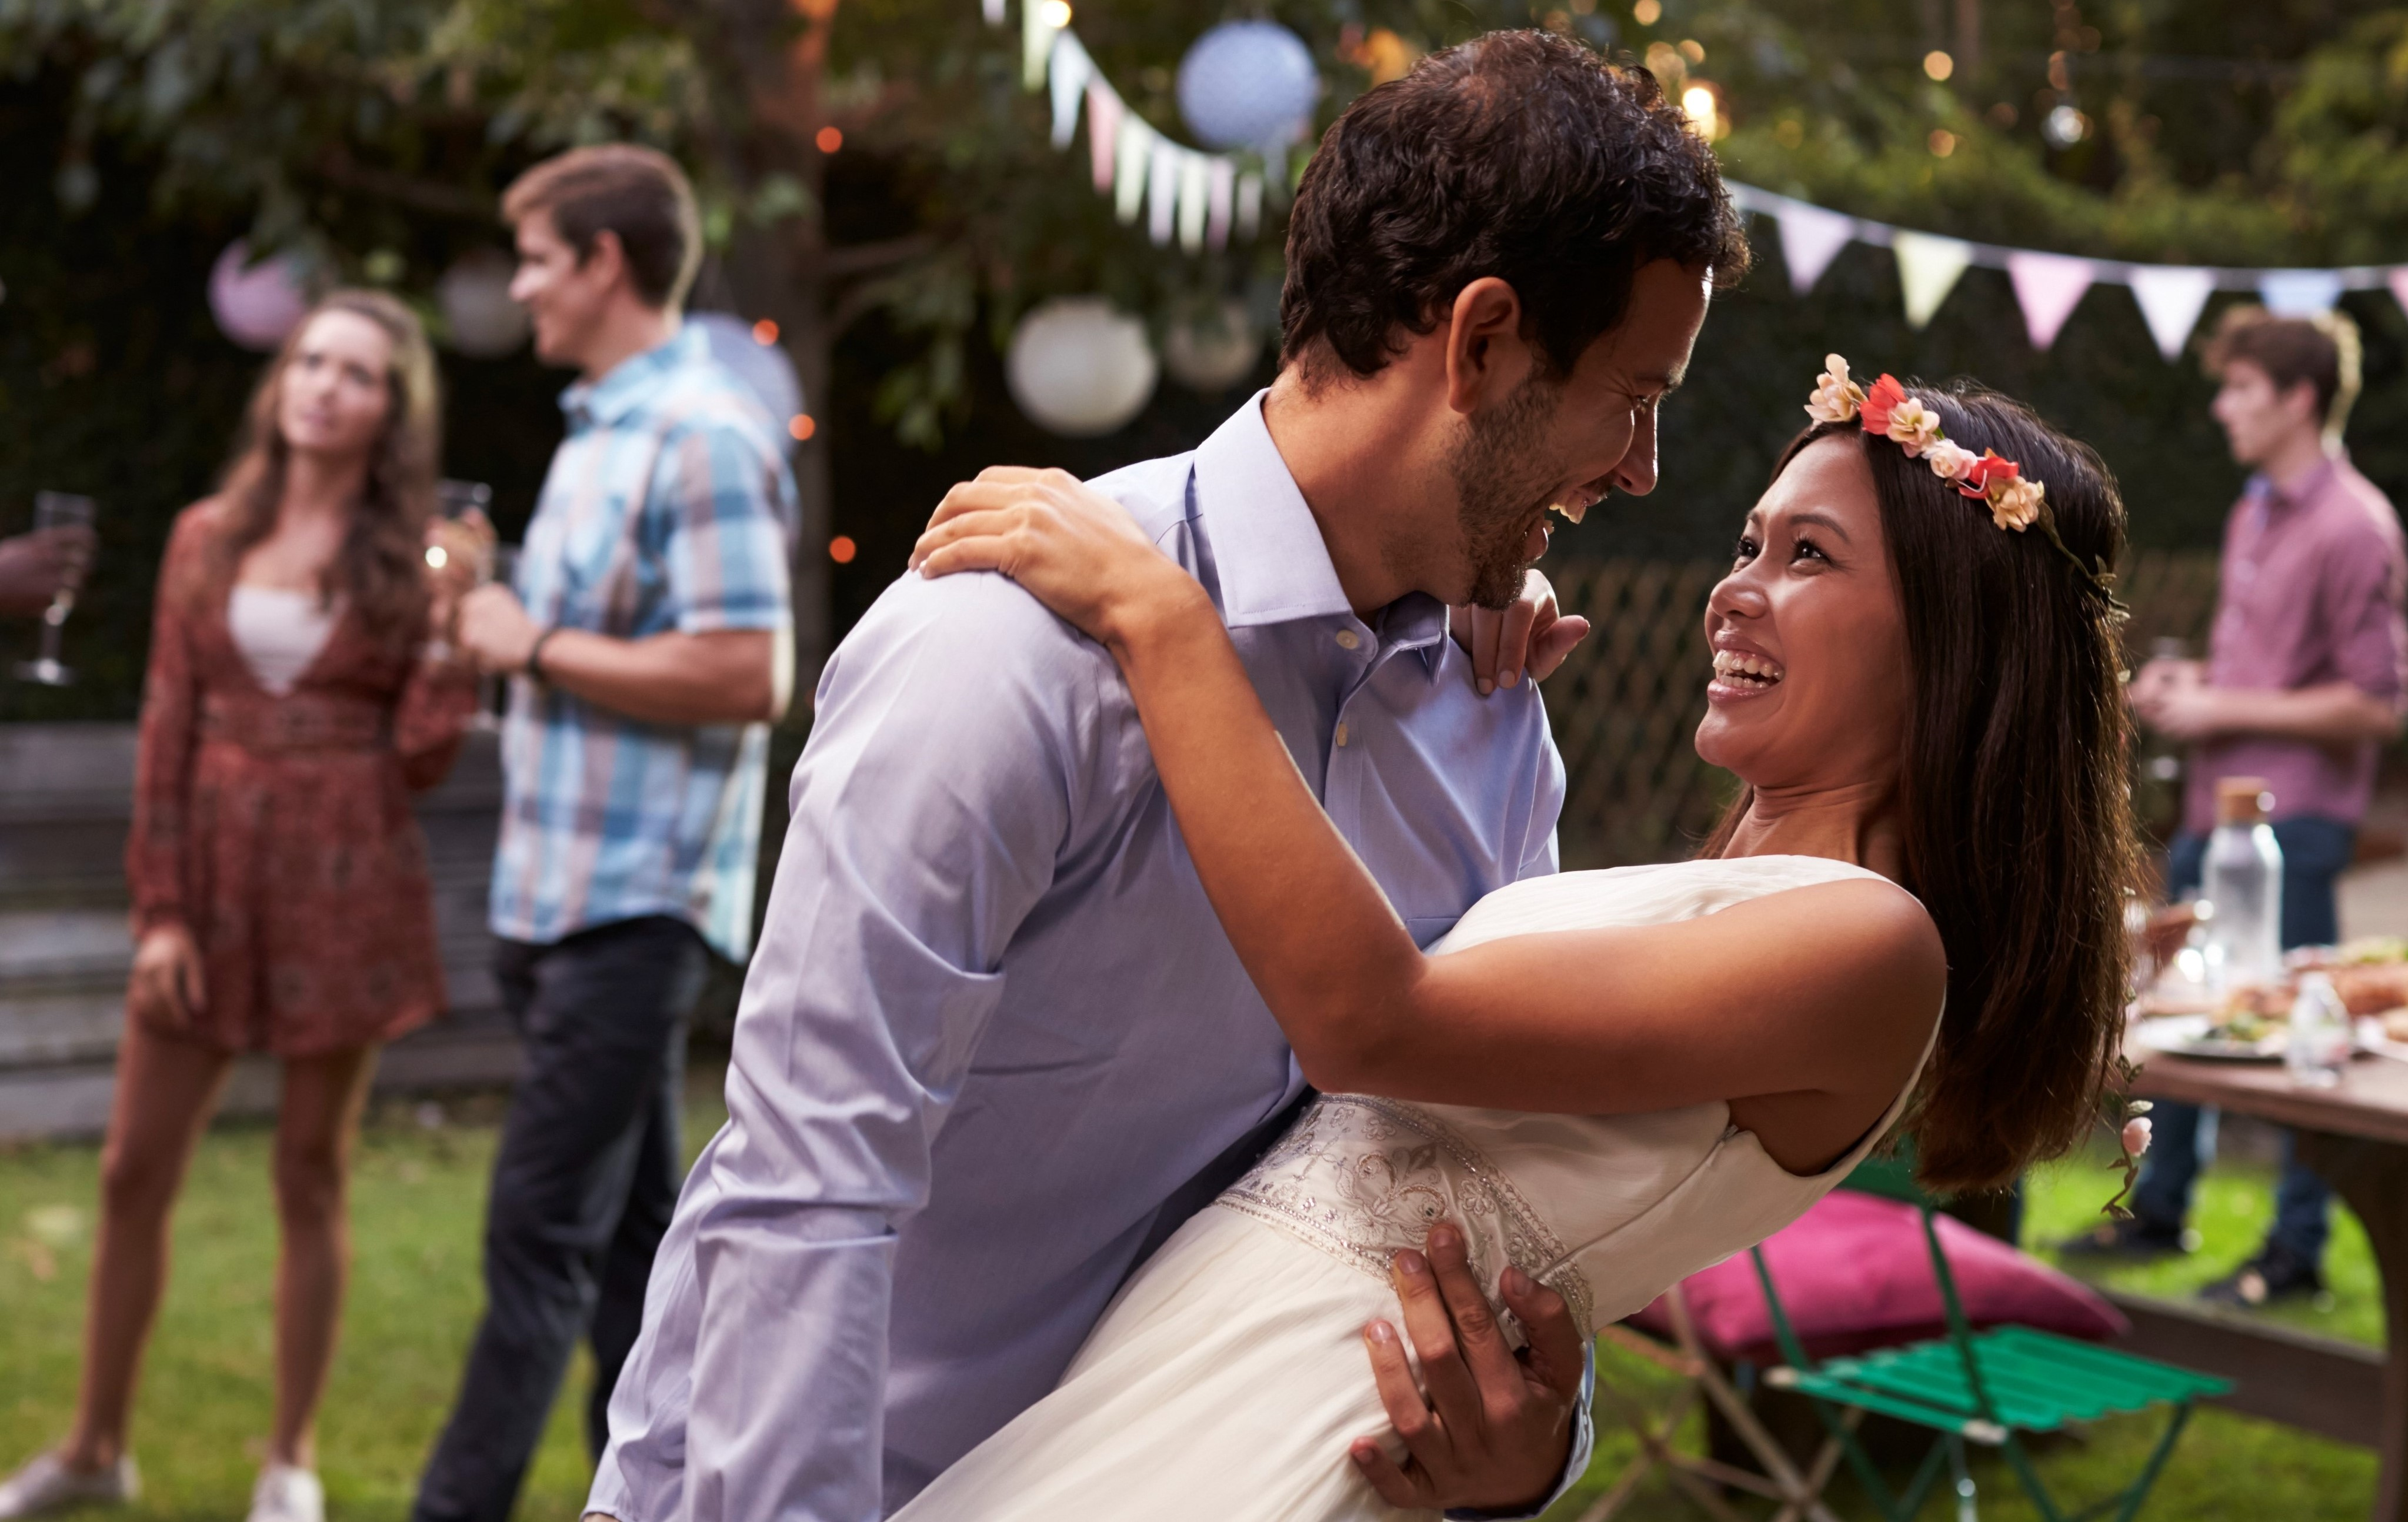 Live Music For Your Wedding – How To Plan